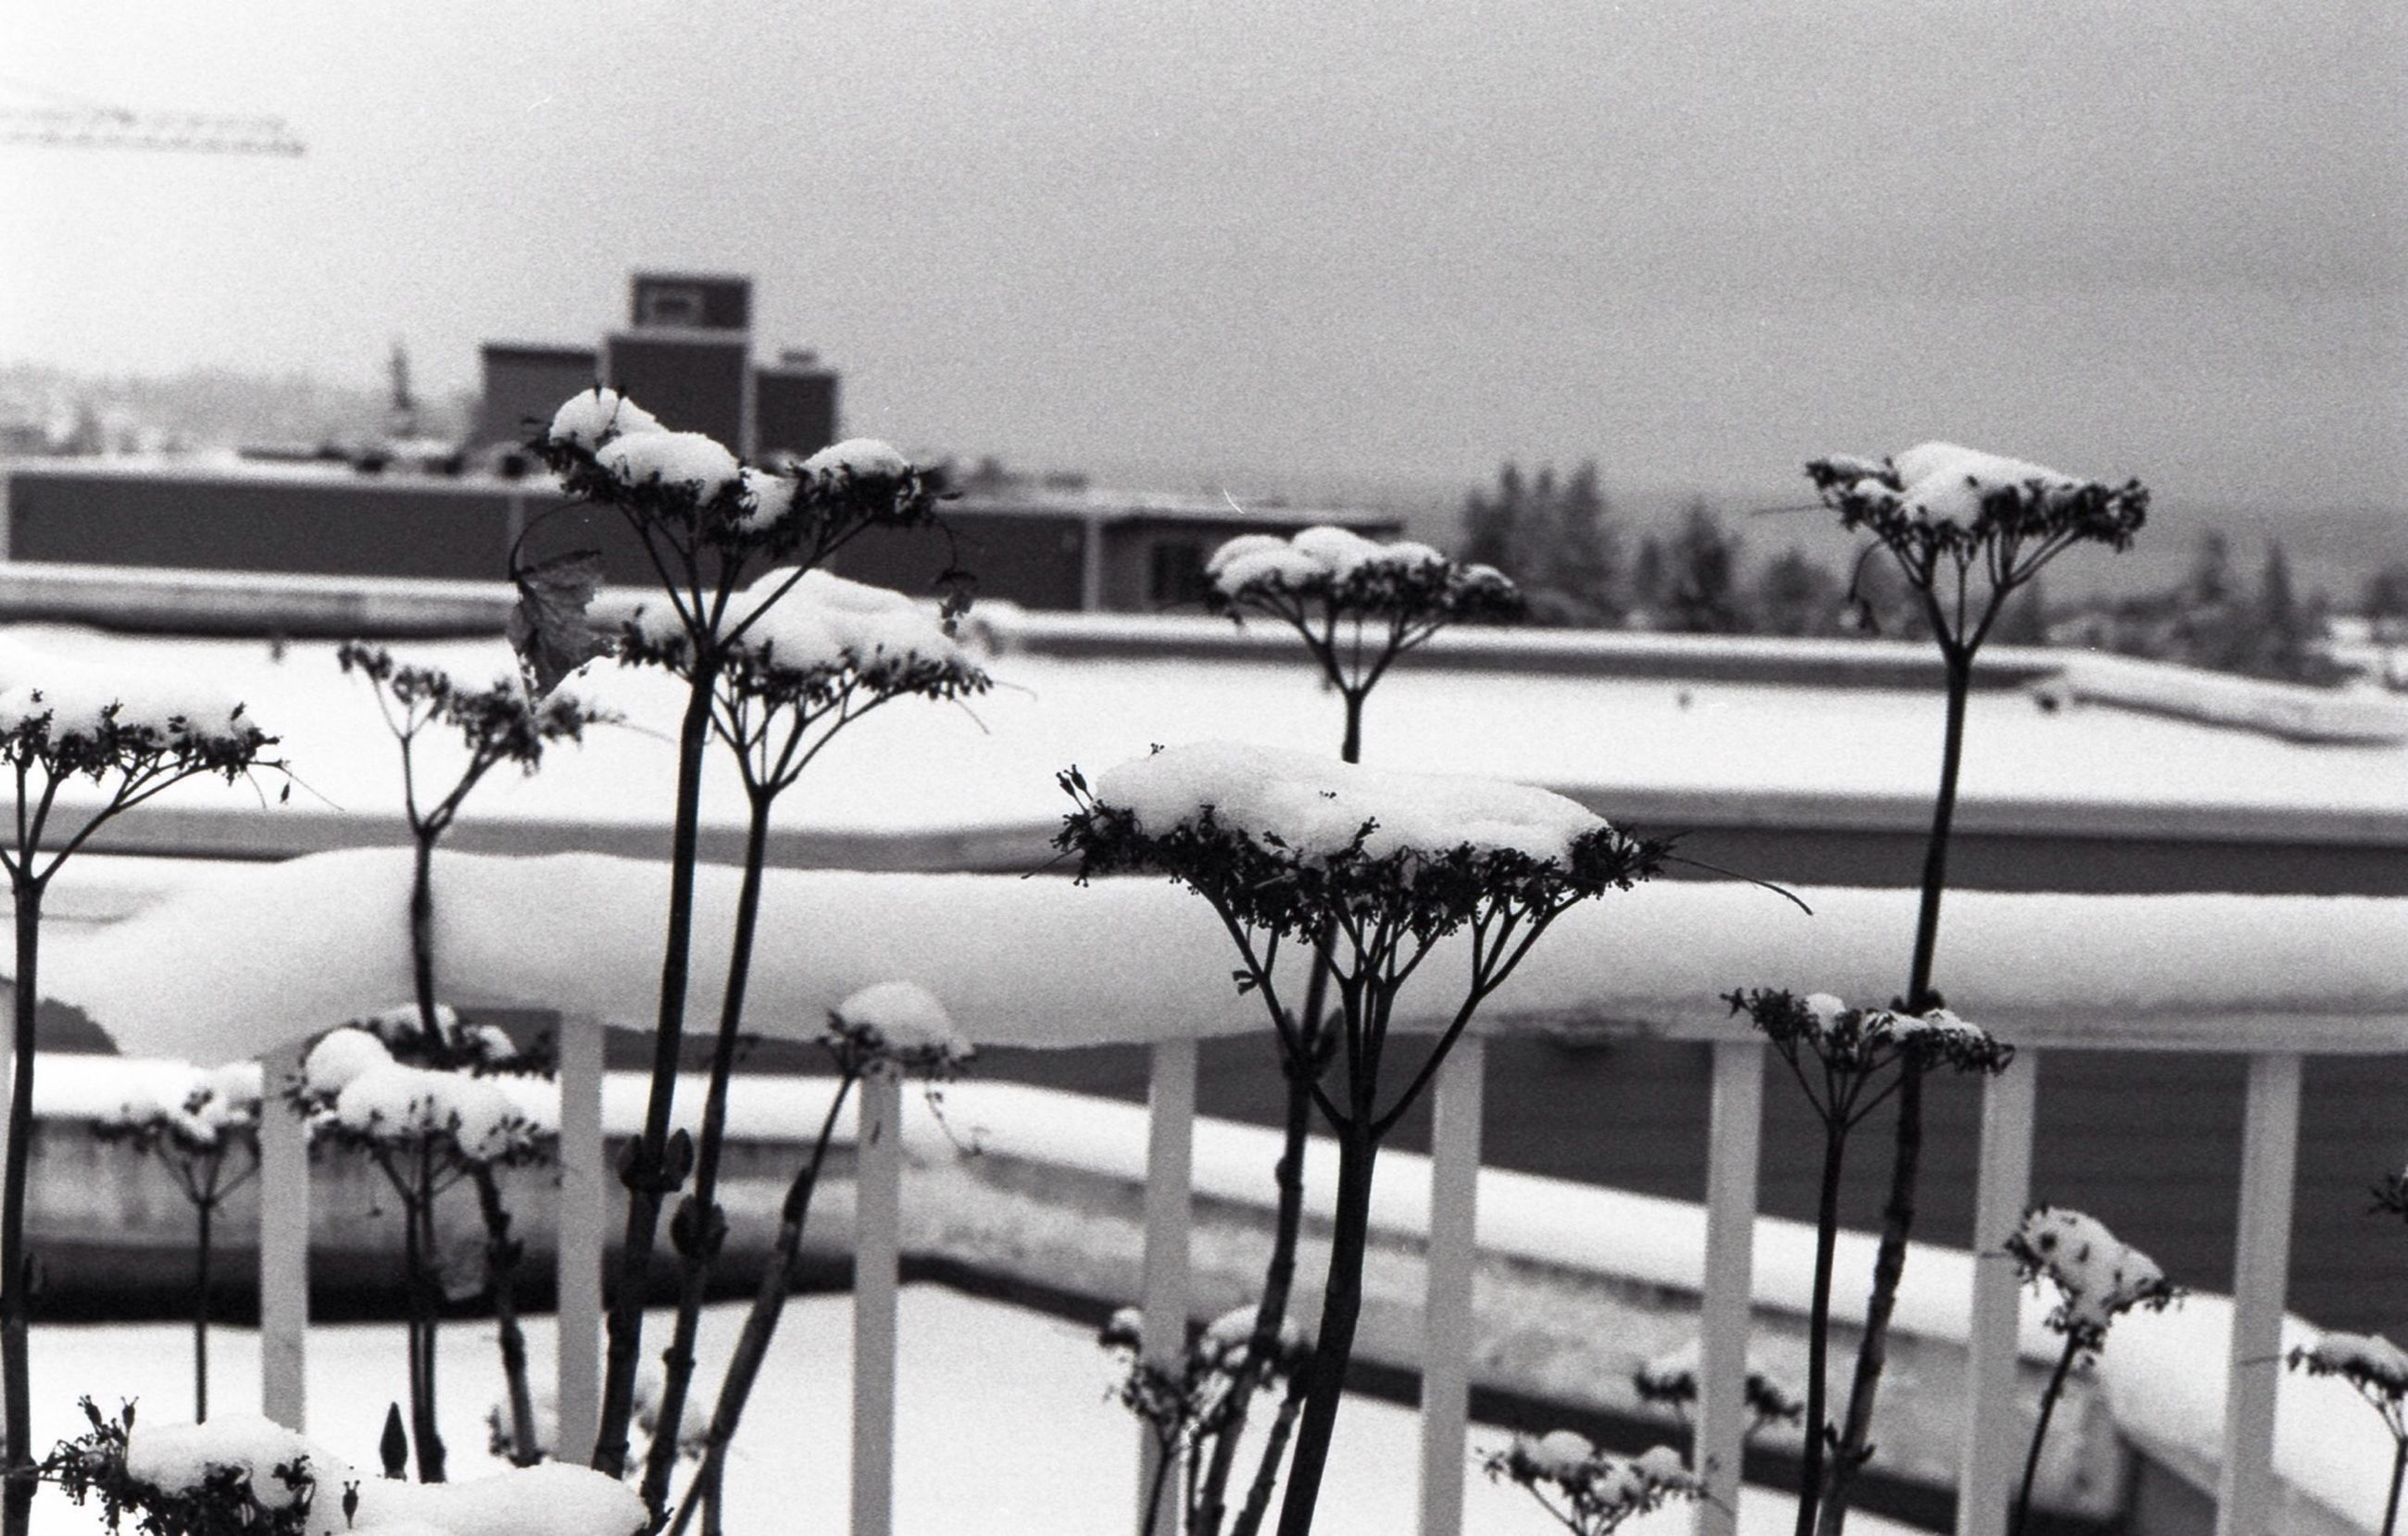 winter, snow, cold temperature, season, railing, weather, water, clear sky, nature, fence, frozen, transportation, sky, covering, white color, day, focus on foreground, sea, outdoors, built structure